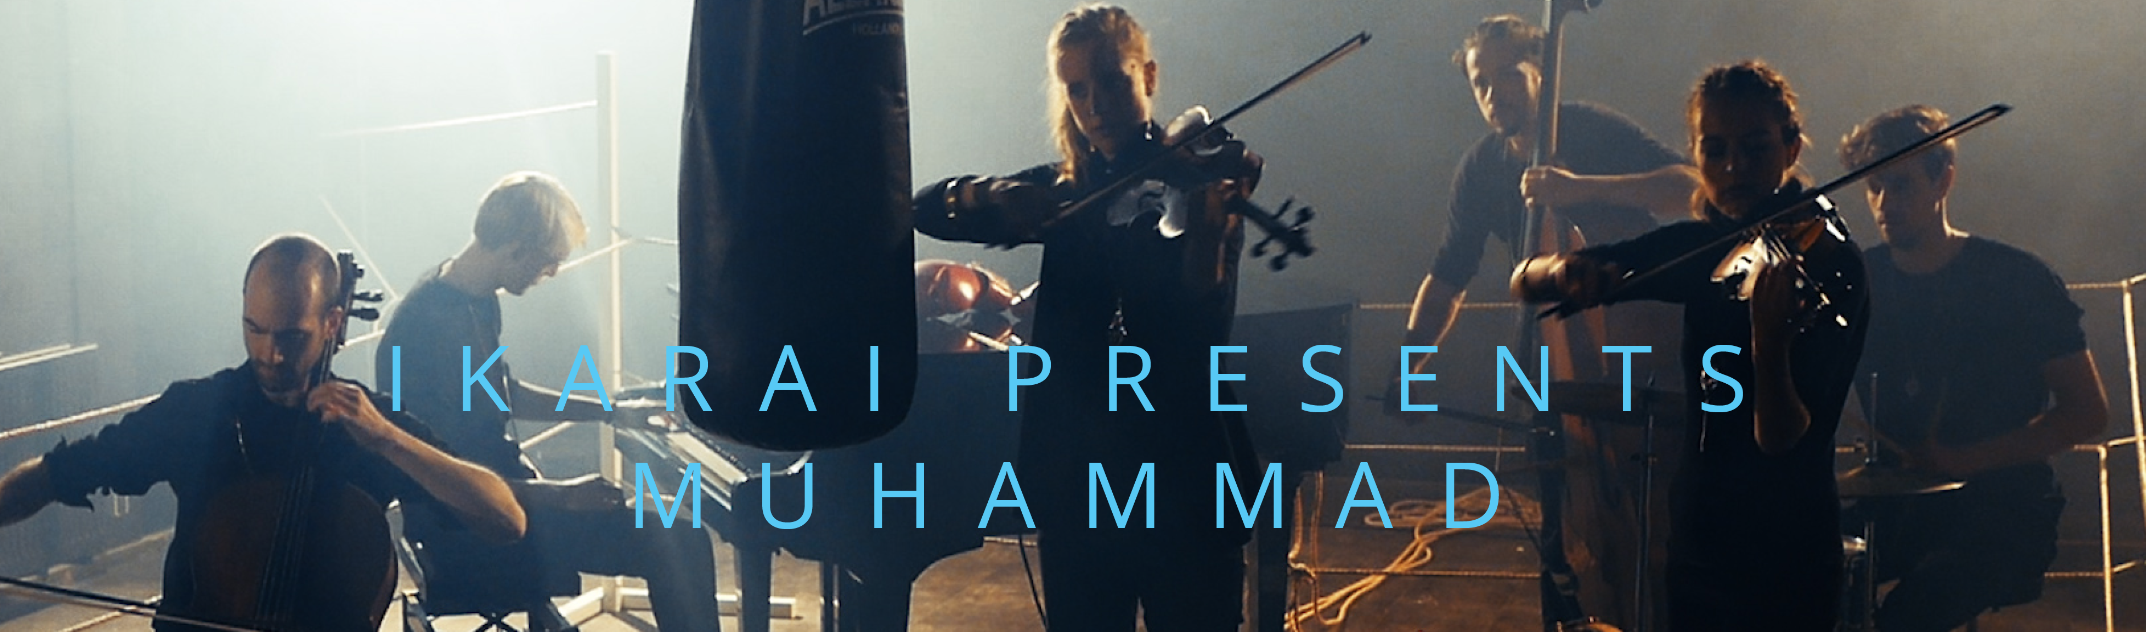 Muhammad - Ikarai presents a new programwith original music set up on the story of Muhammad Ali.The legendary fight, the dance of the century, The Rumble in the Jungle, finally set to music. A thrilling evening full of recollections, speeches and poems by the fighter. Expected to play from early 2018 throughout the year. Available upon request.